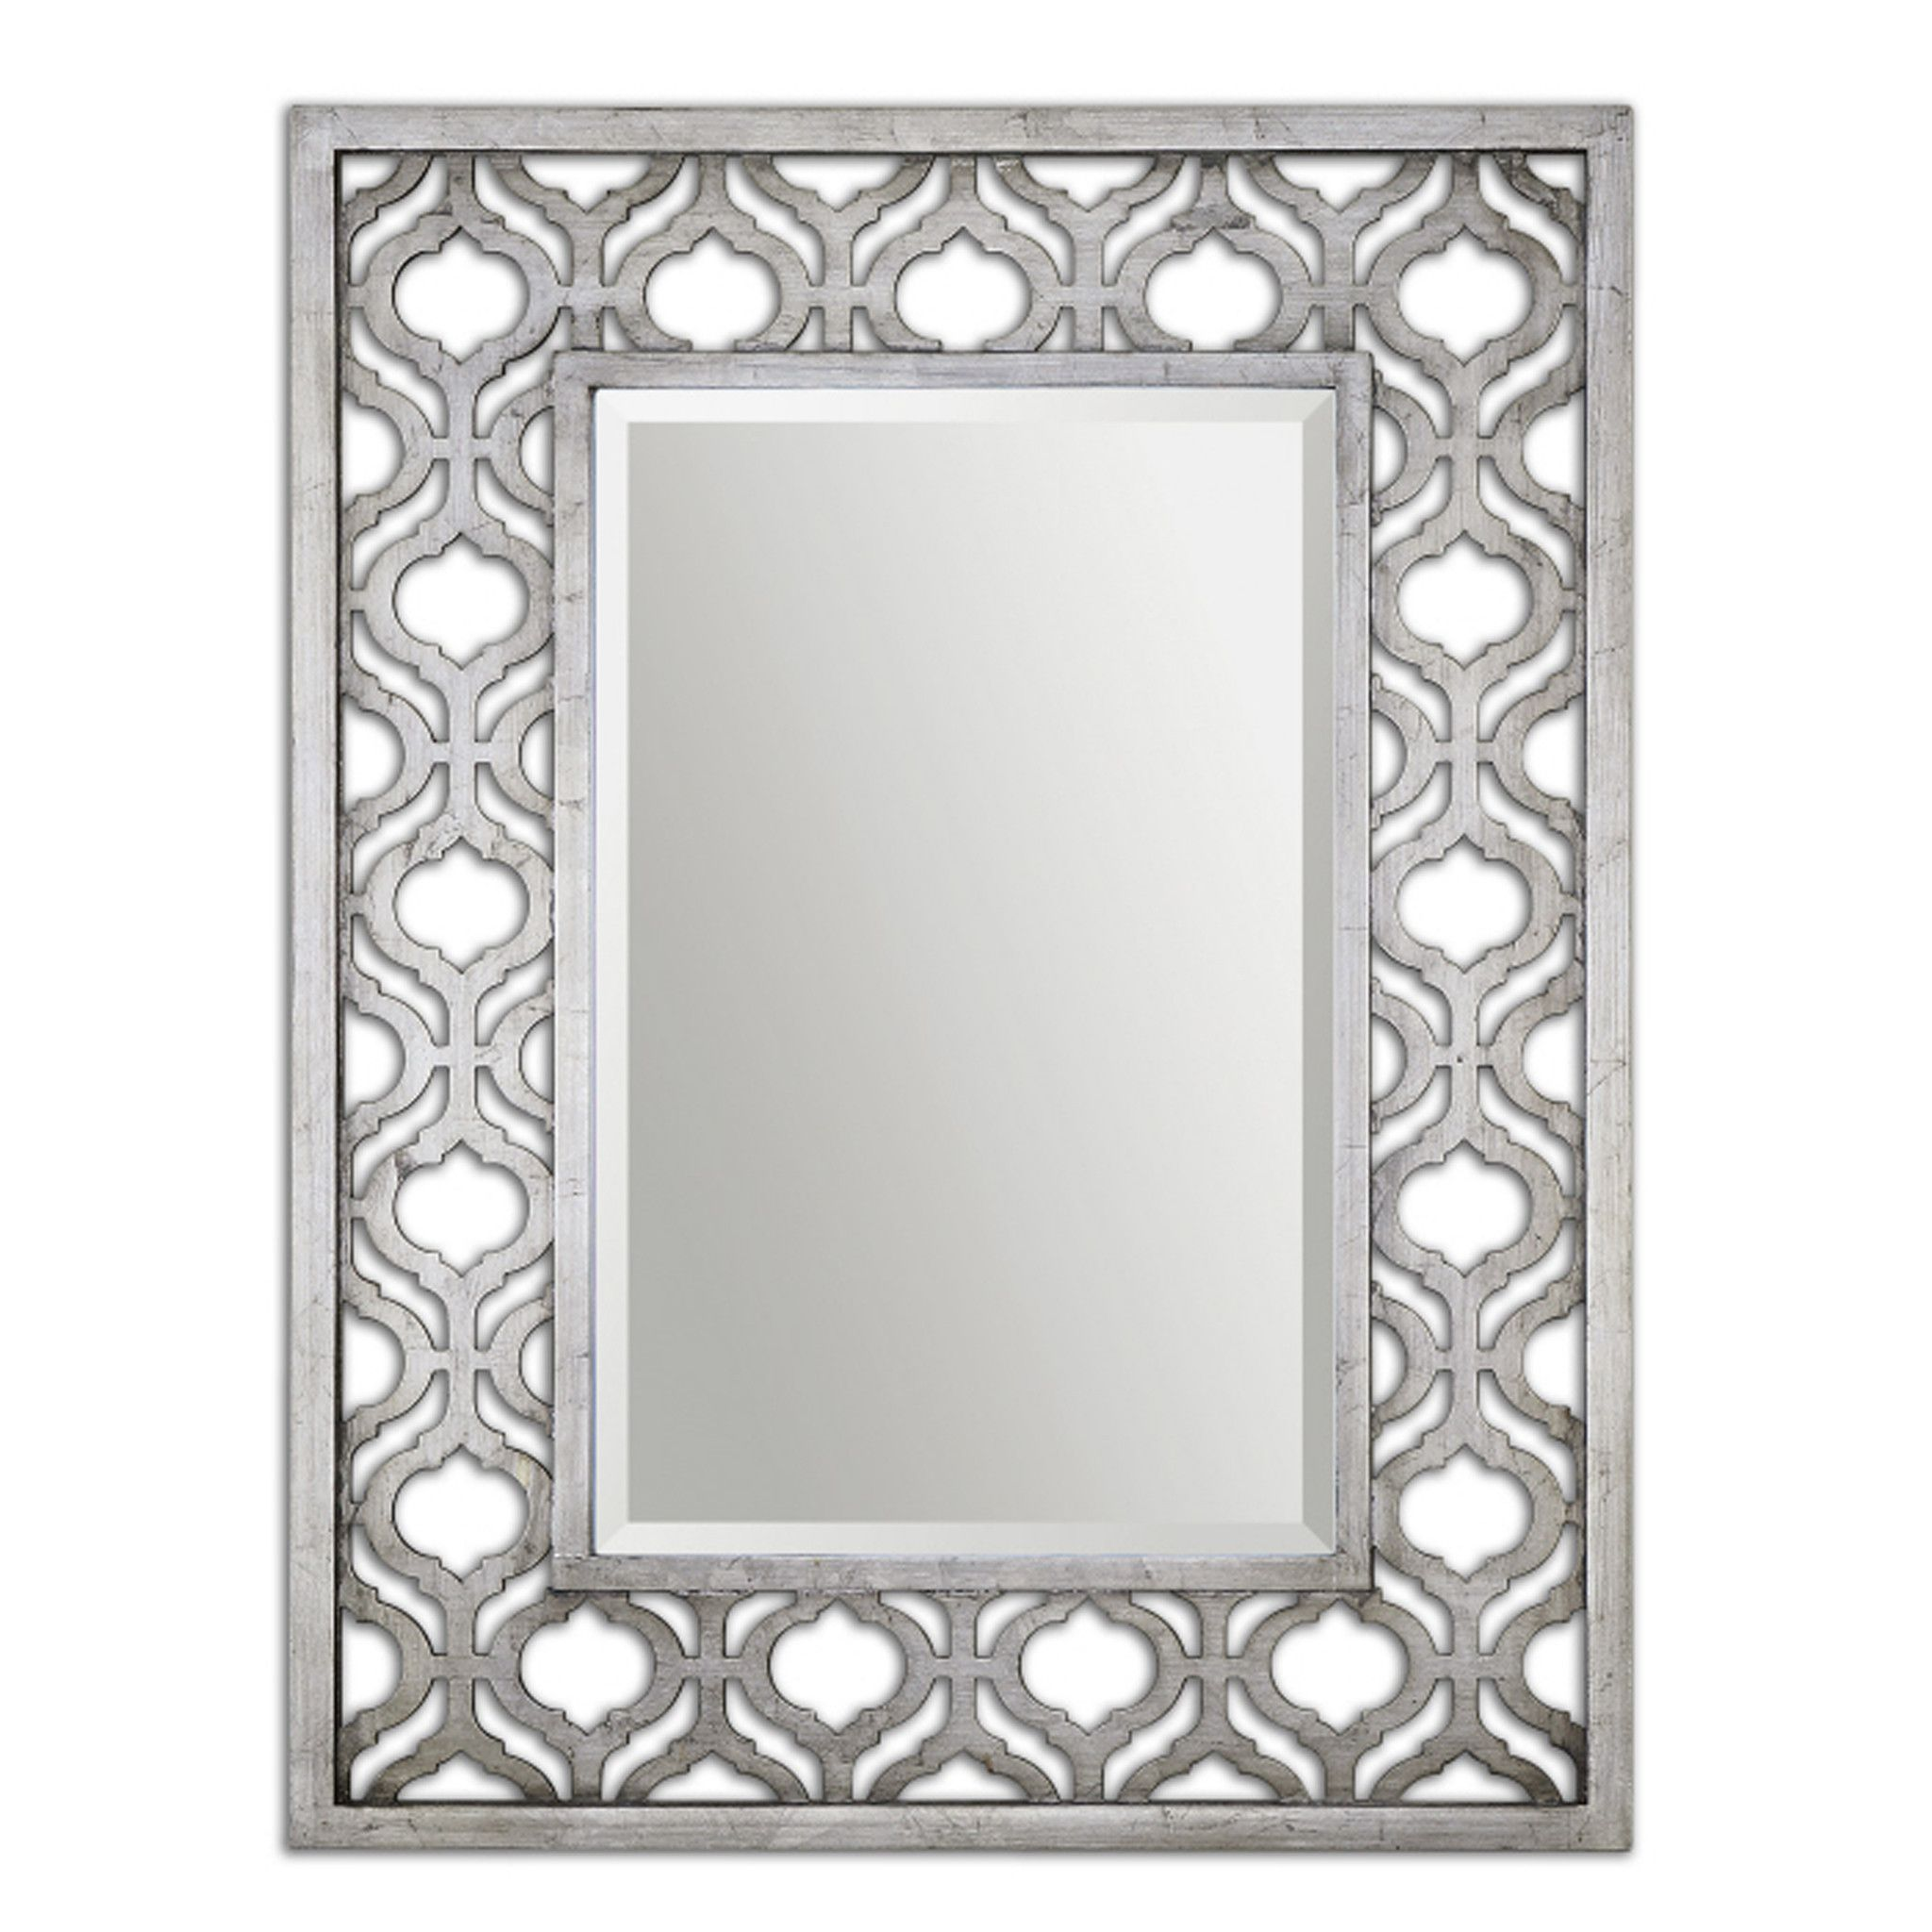 Frame Features A Decorative Design Finished In Antiqued Silver Leaf